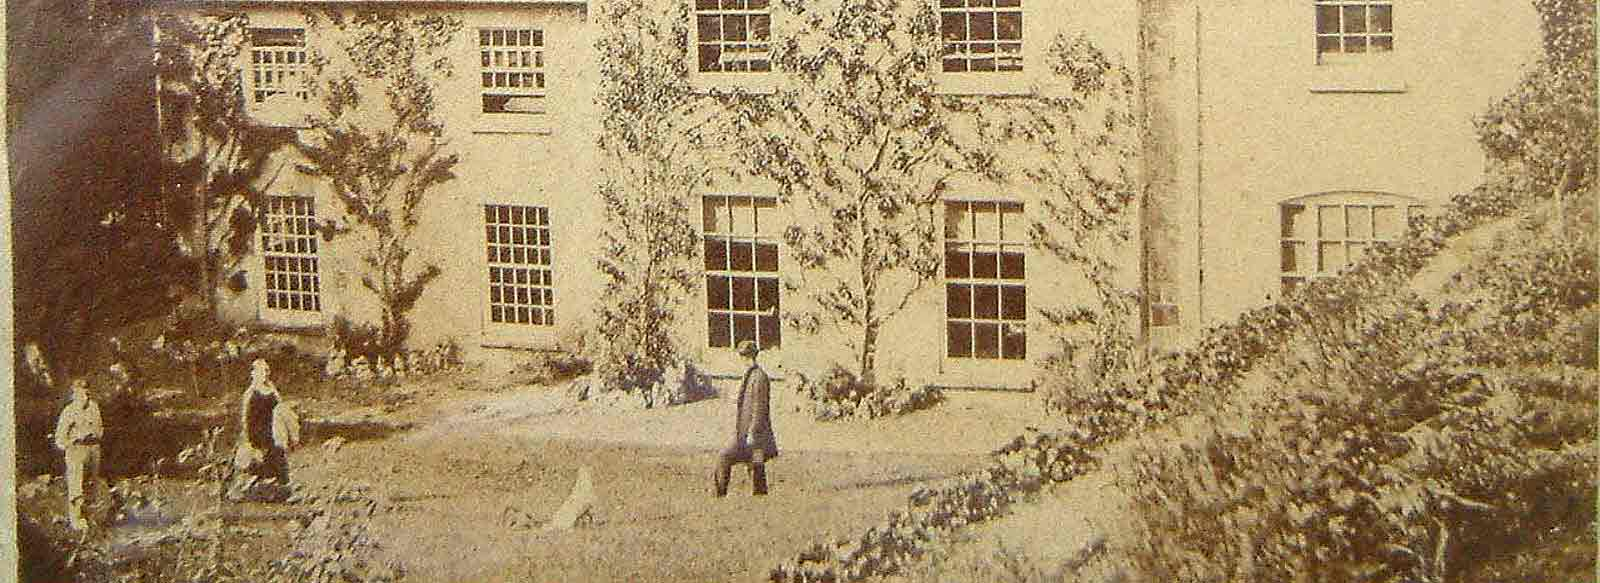 Pen-y-Dyffryn (The Old Rectory) in 1884 with Reverend Jones in the foreground